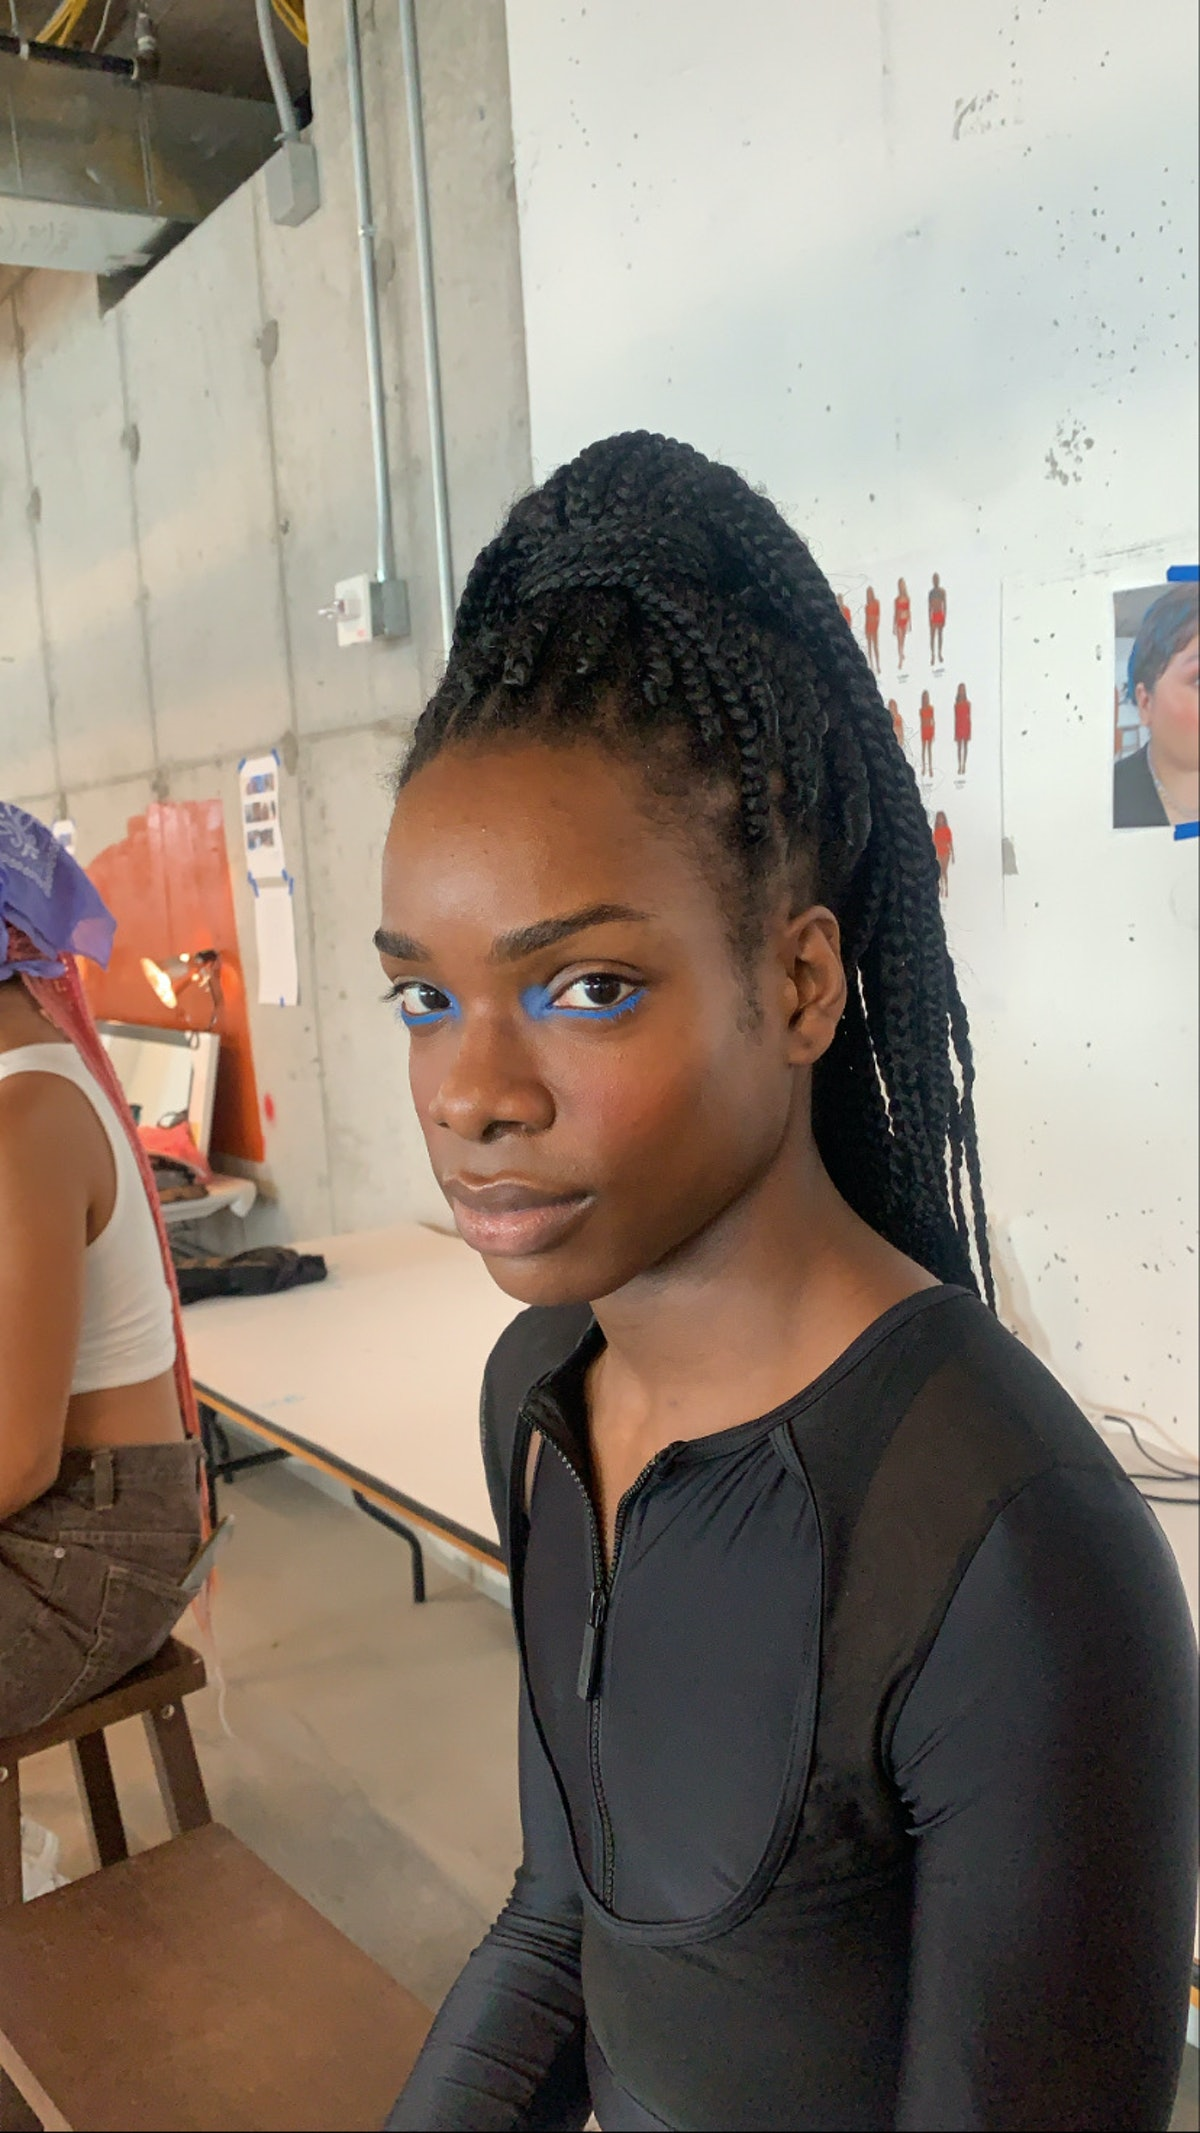 Graphic eyeliner, backstage at Chromat SS '22 show